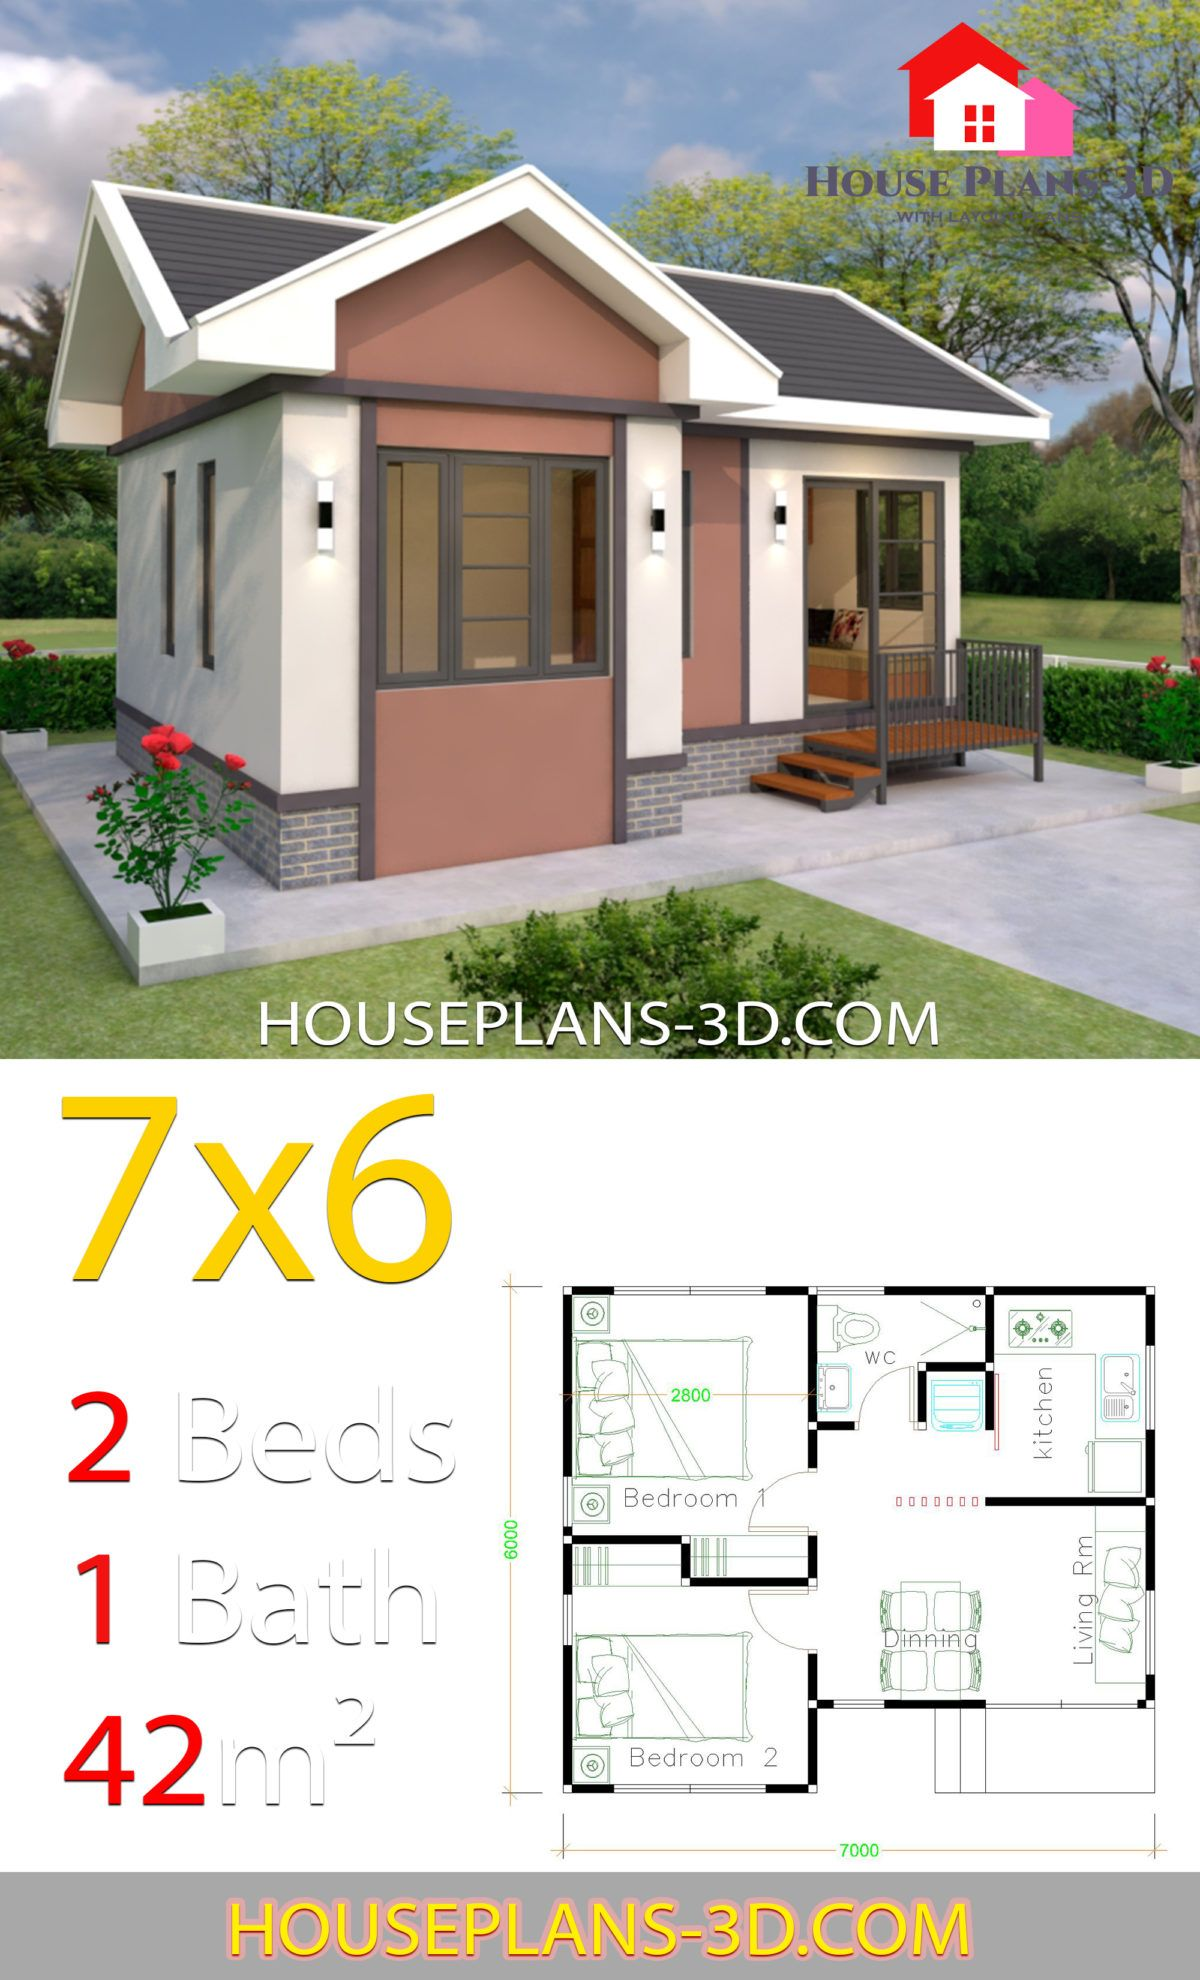 House Plans Design 7x6 With 2 Bedrooms Gable Roof House Plans 3d Small House Design Plans Gable Roof House House Plans